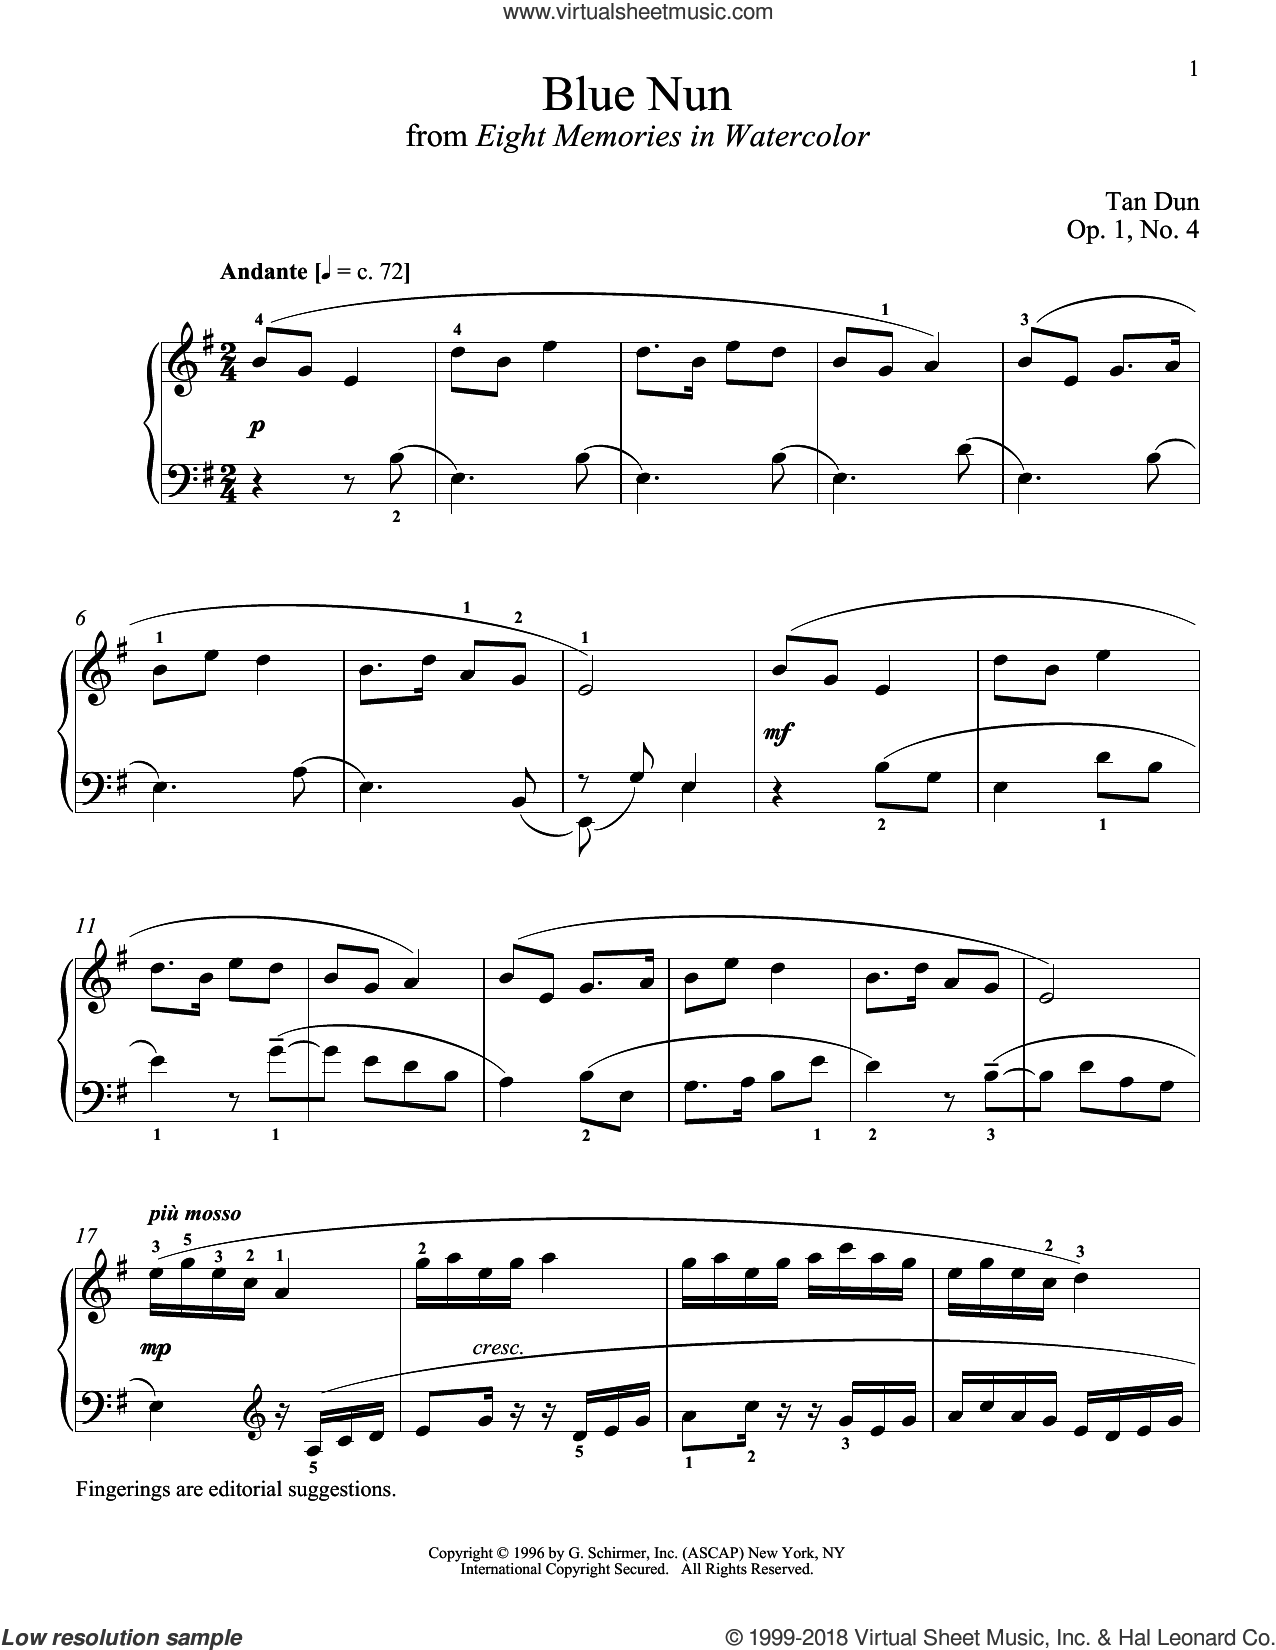 Blue Nun sheet music for piano solo by Tan Dun and Richard Walters, classical score, intermediate skill level